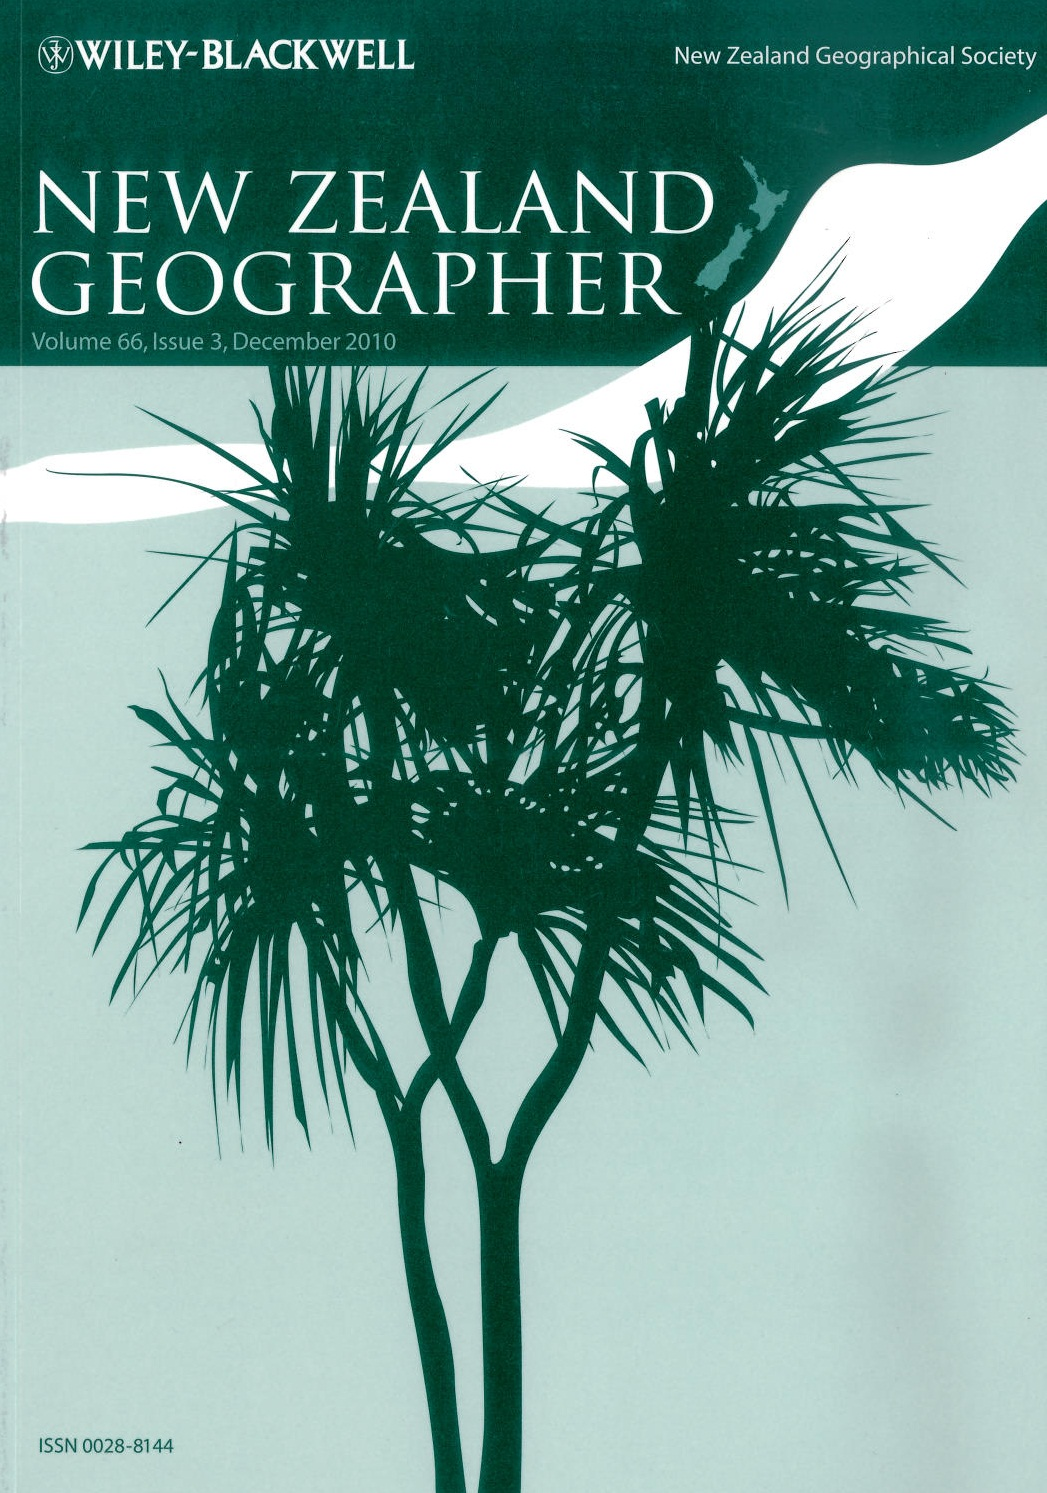 April 2015 Issue of the New Zealand Geographer